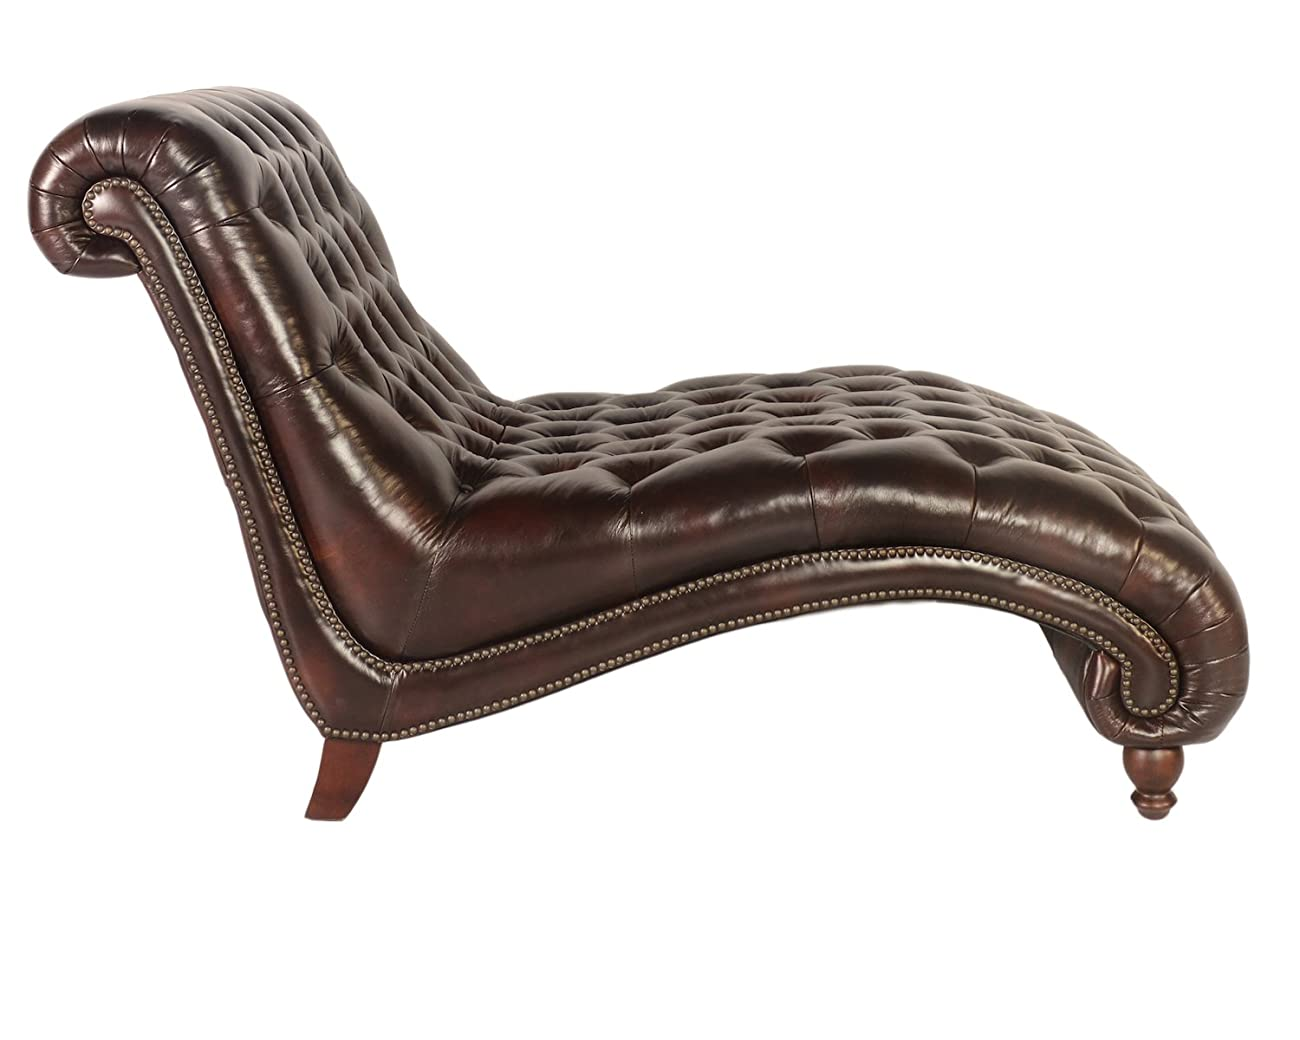 Lazzaro C3988 Double Chaise in Vintage Toberlone Leather 1